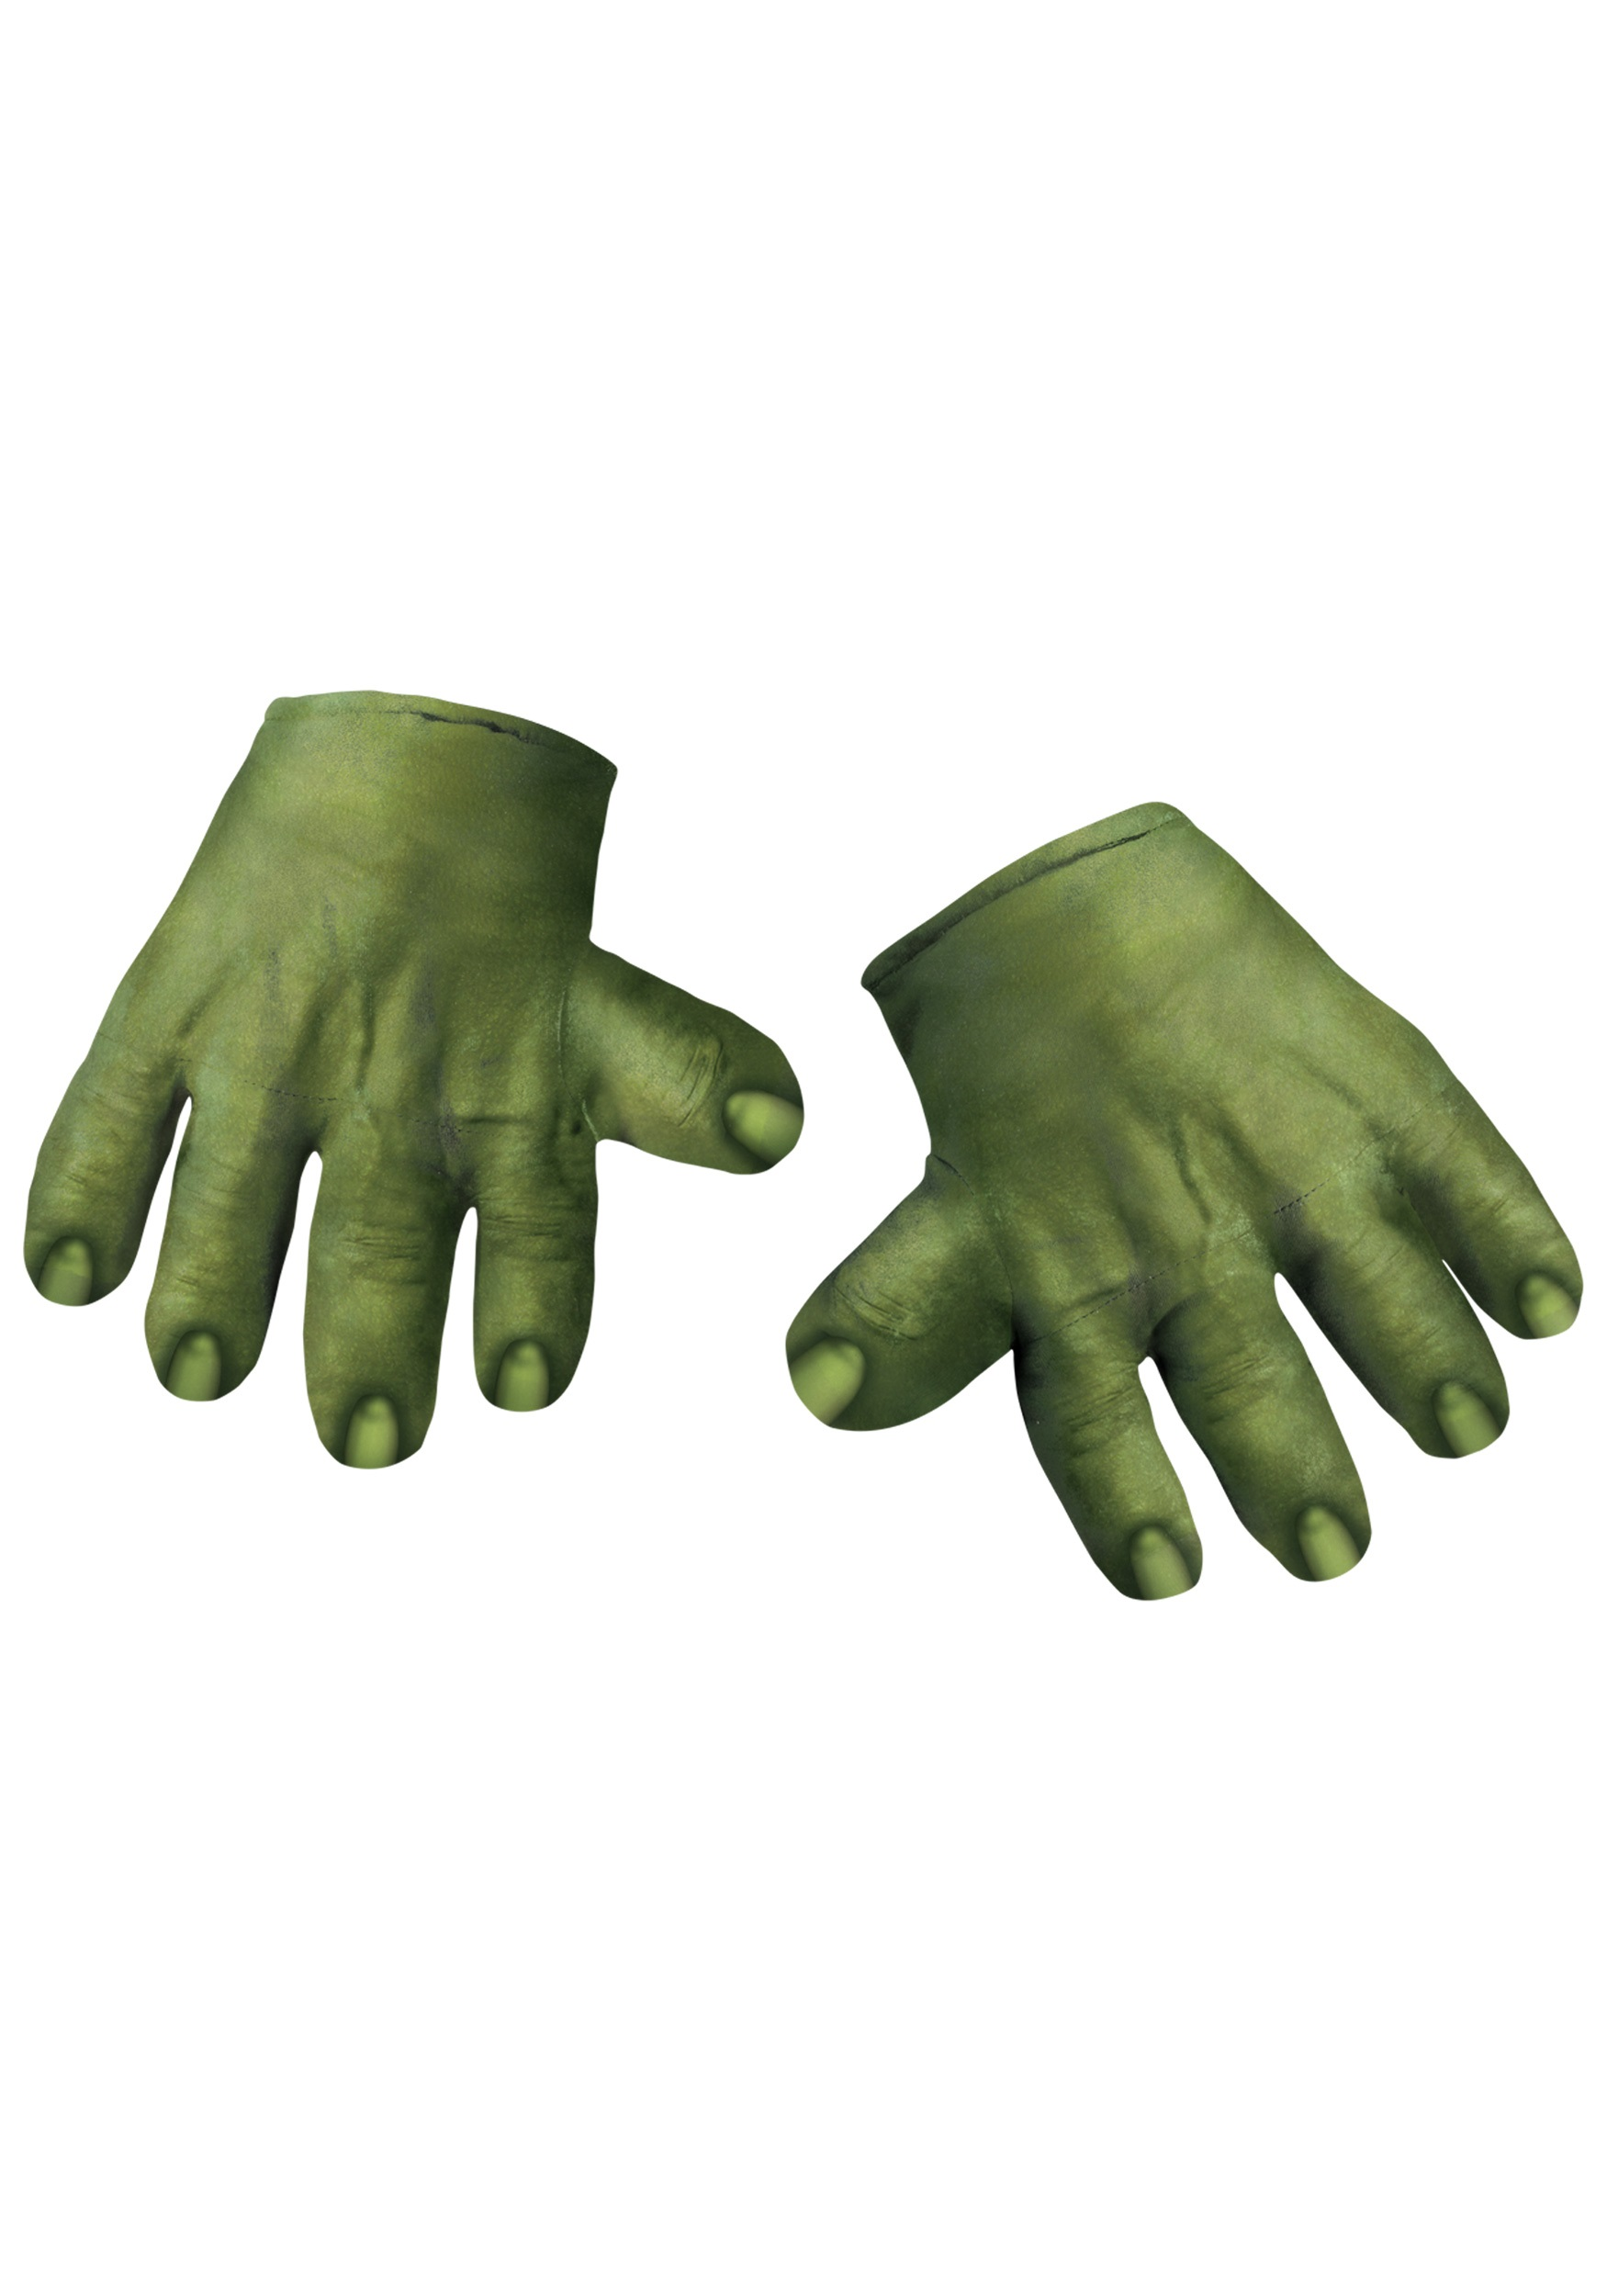 Incredible Hulk Hands